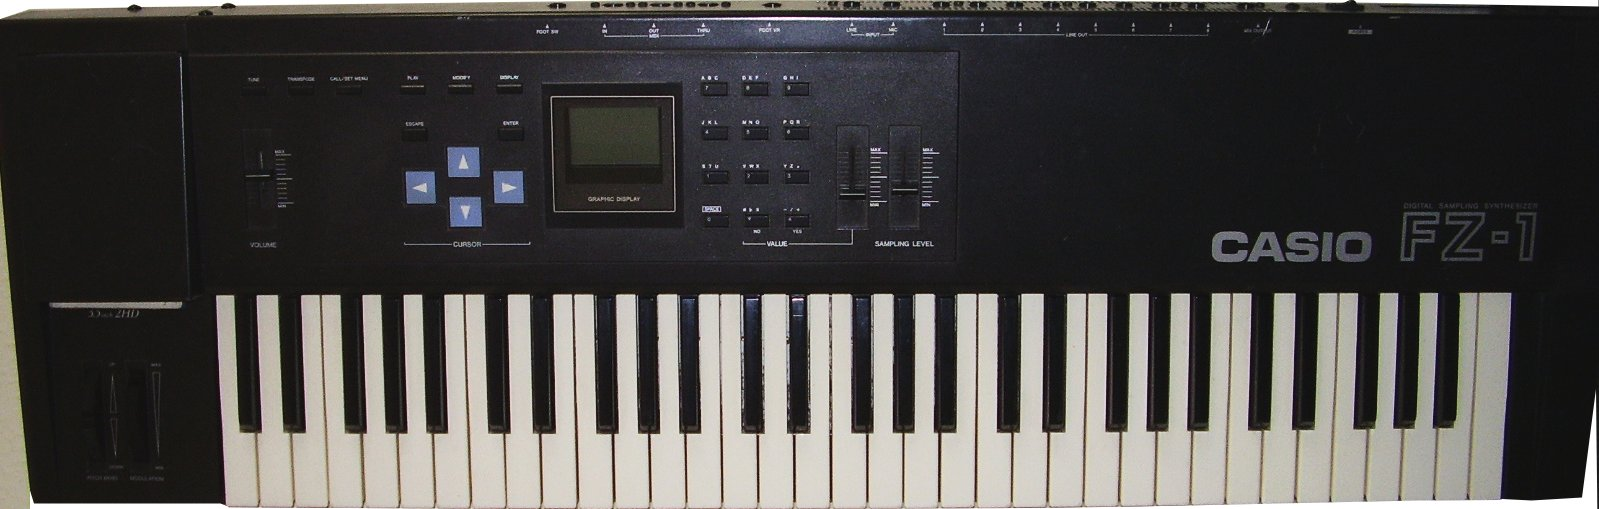 Casio FZ1, Fz 10m , Fz 20m synthesizer